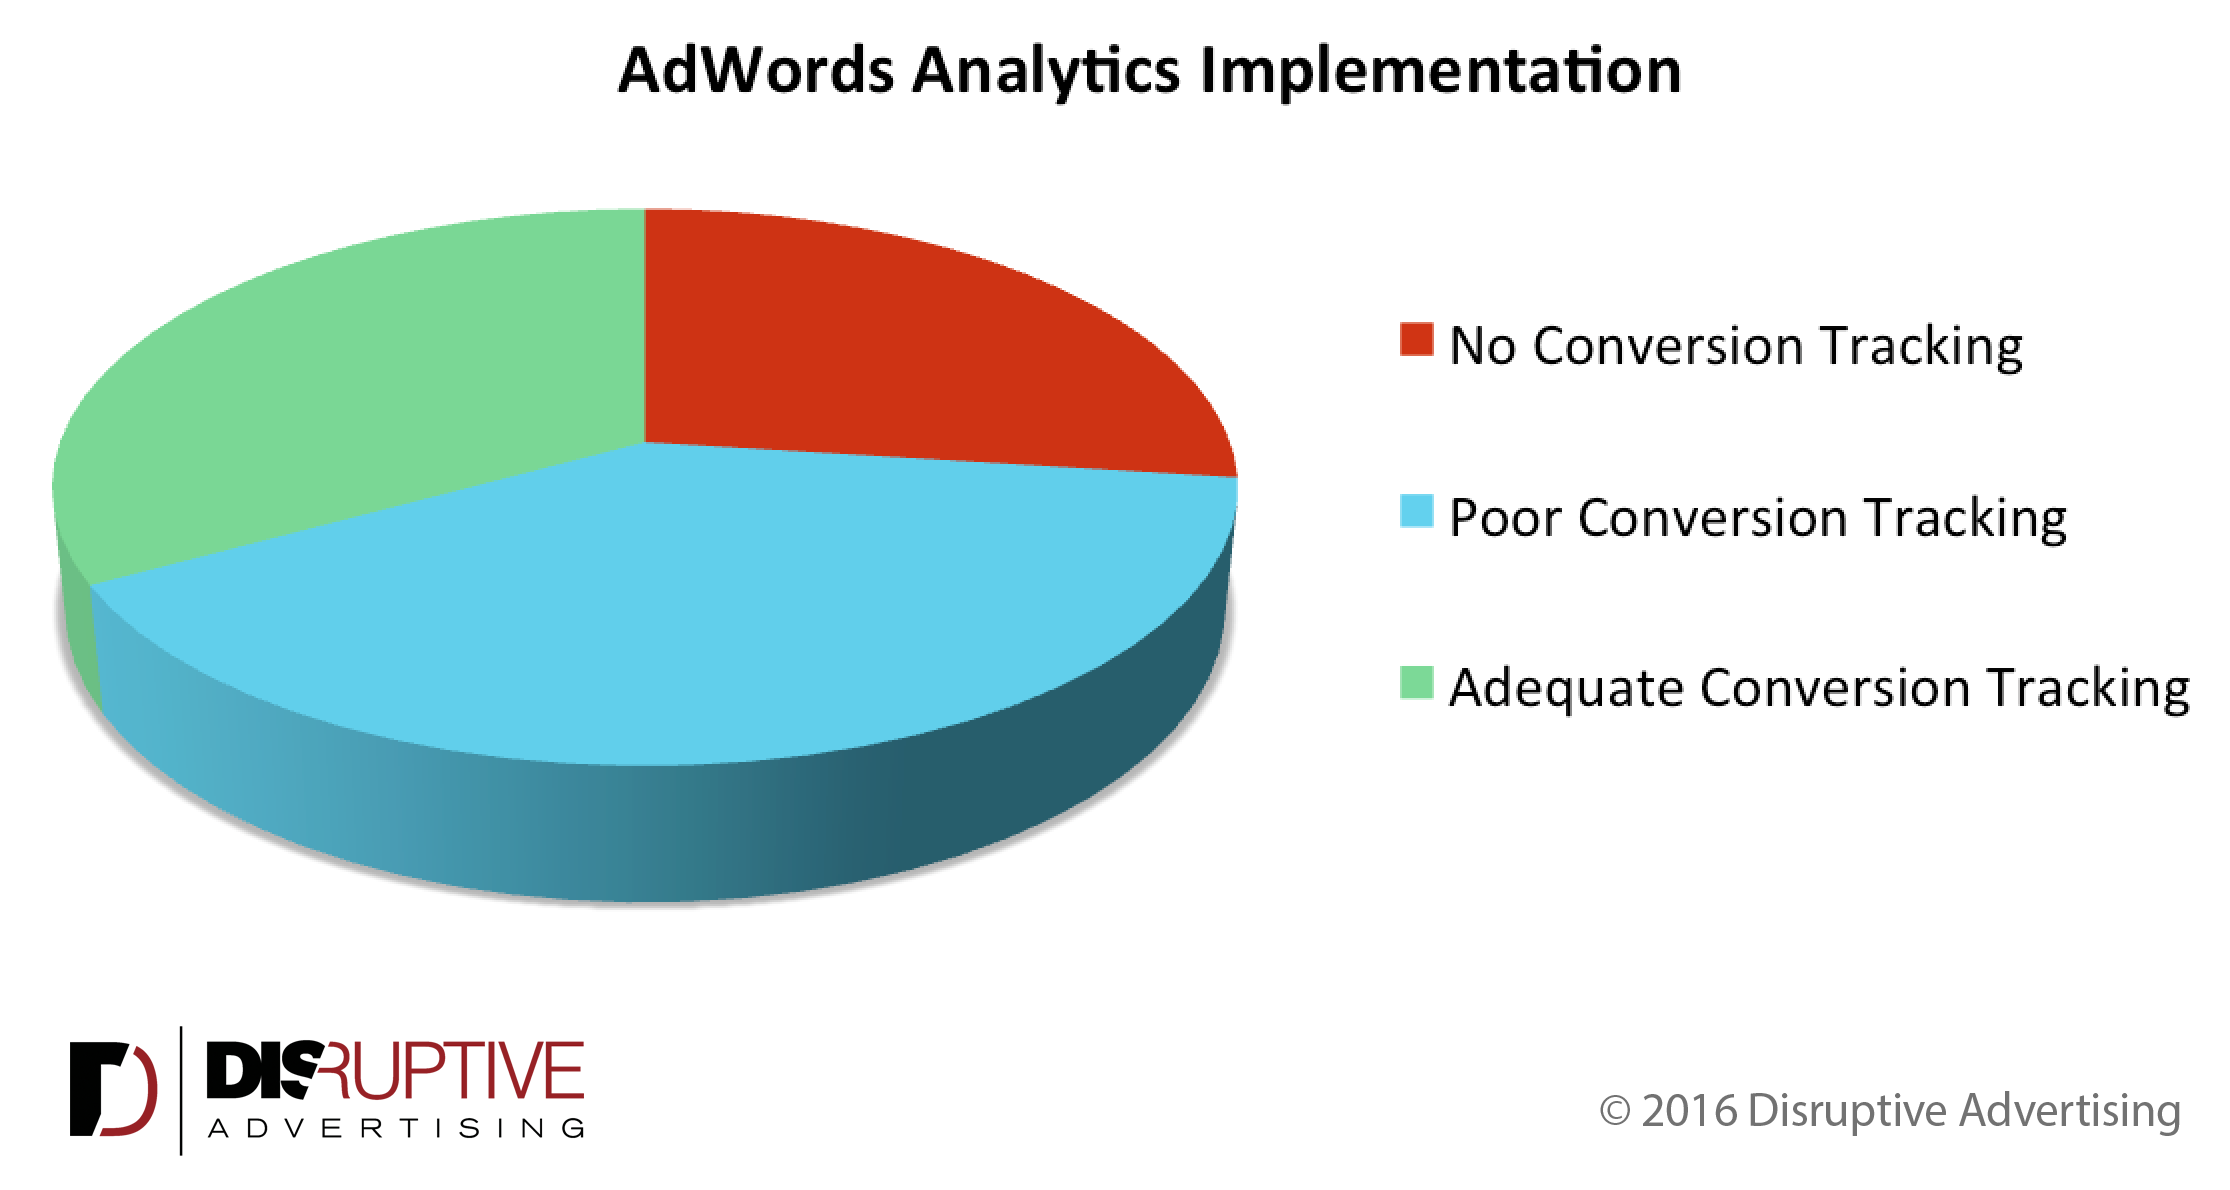 Only 30% of accounts have adequate conversion tracking